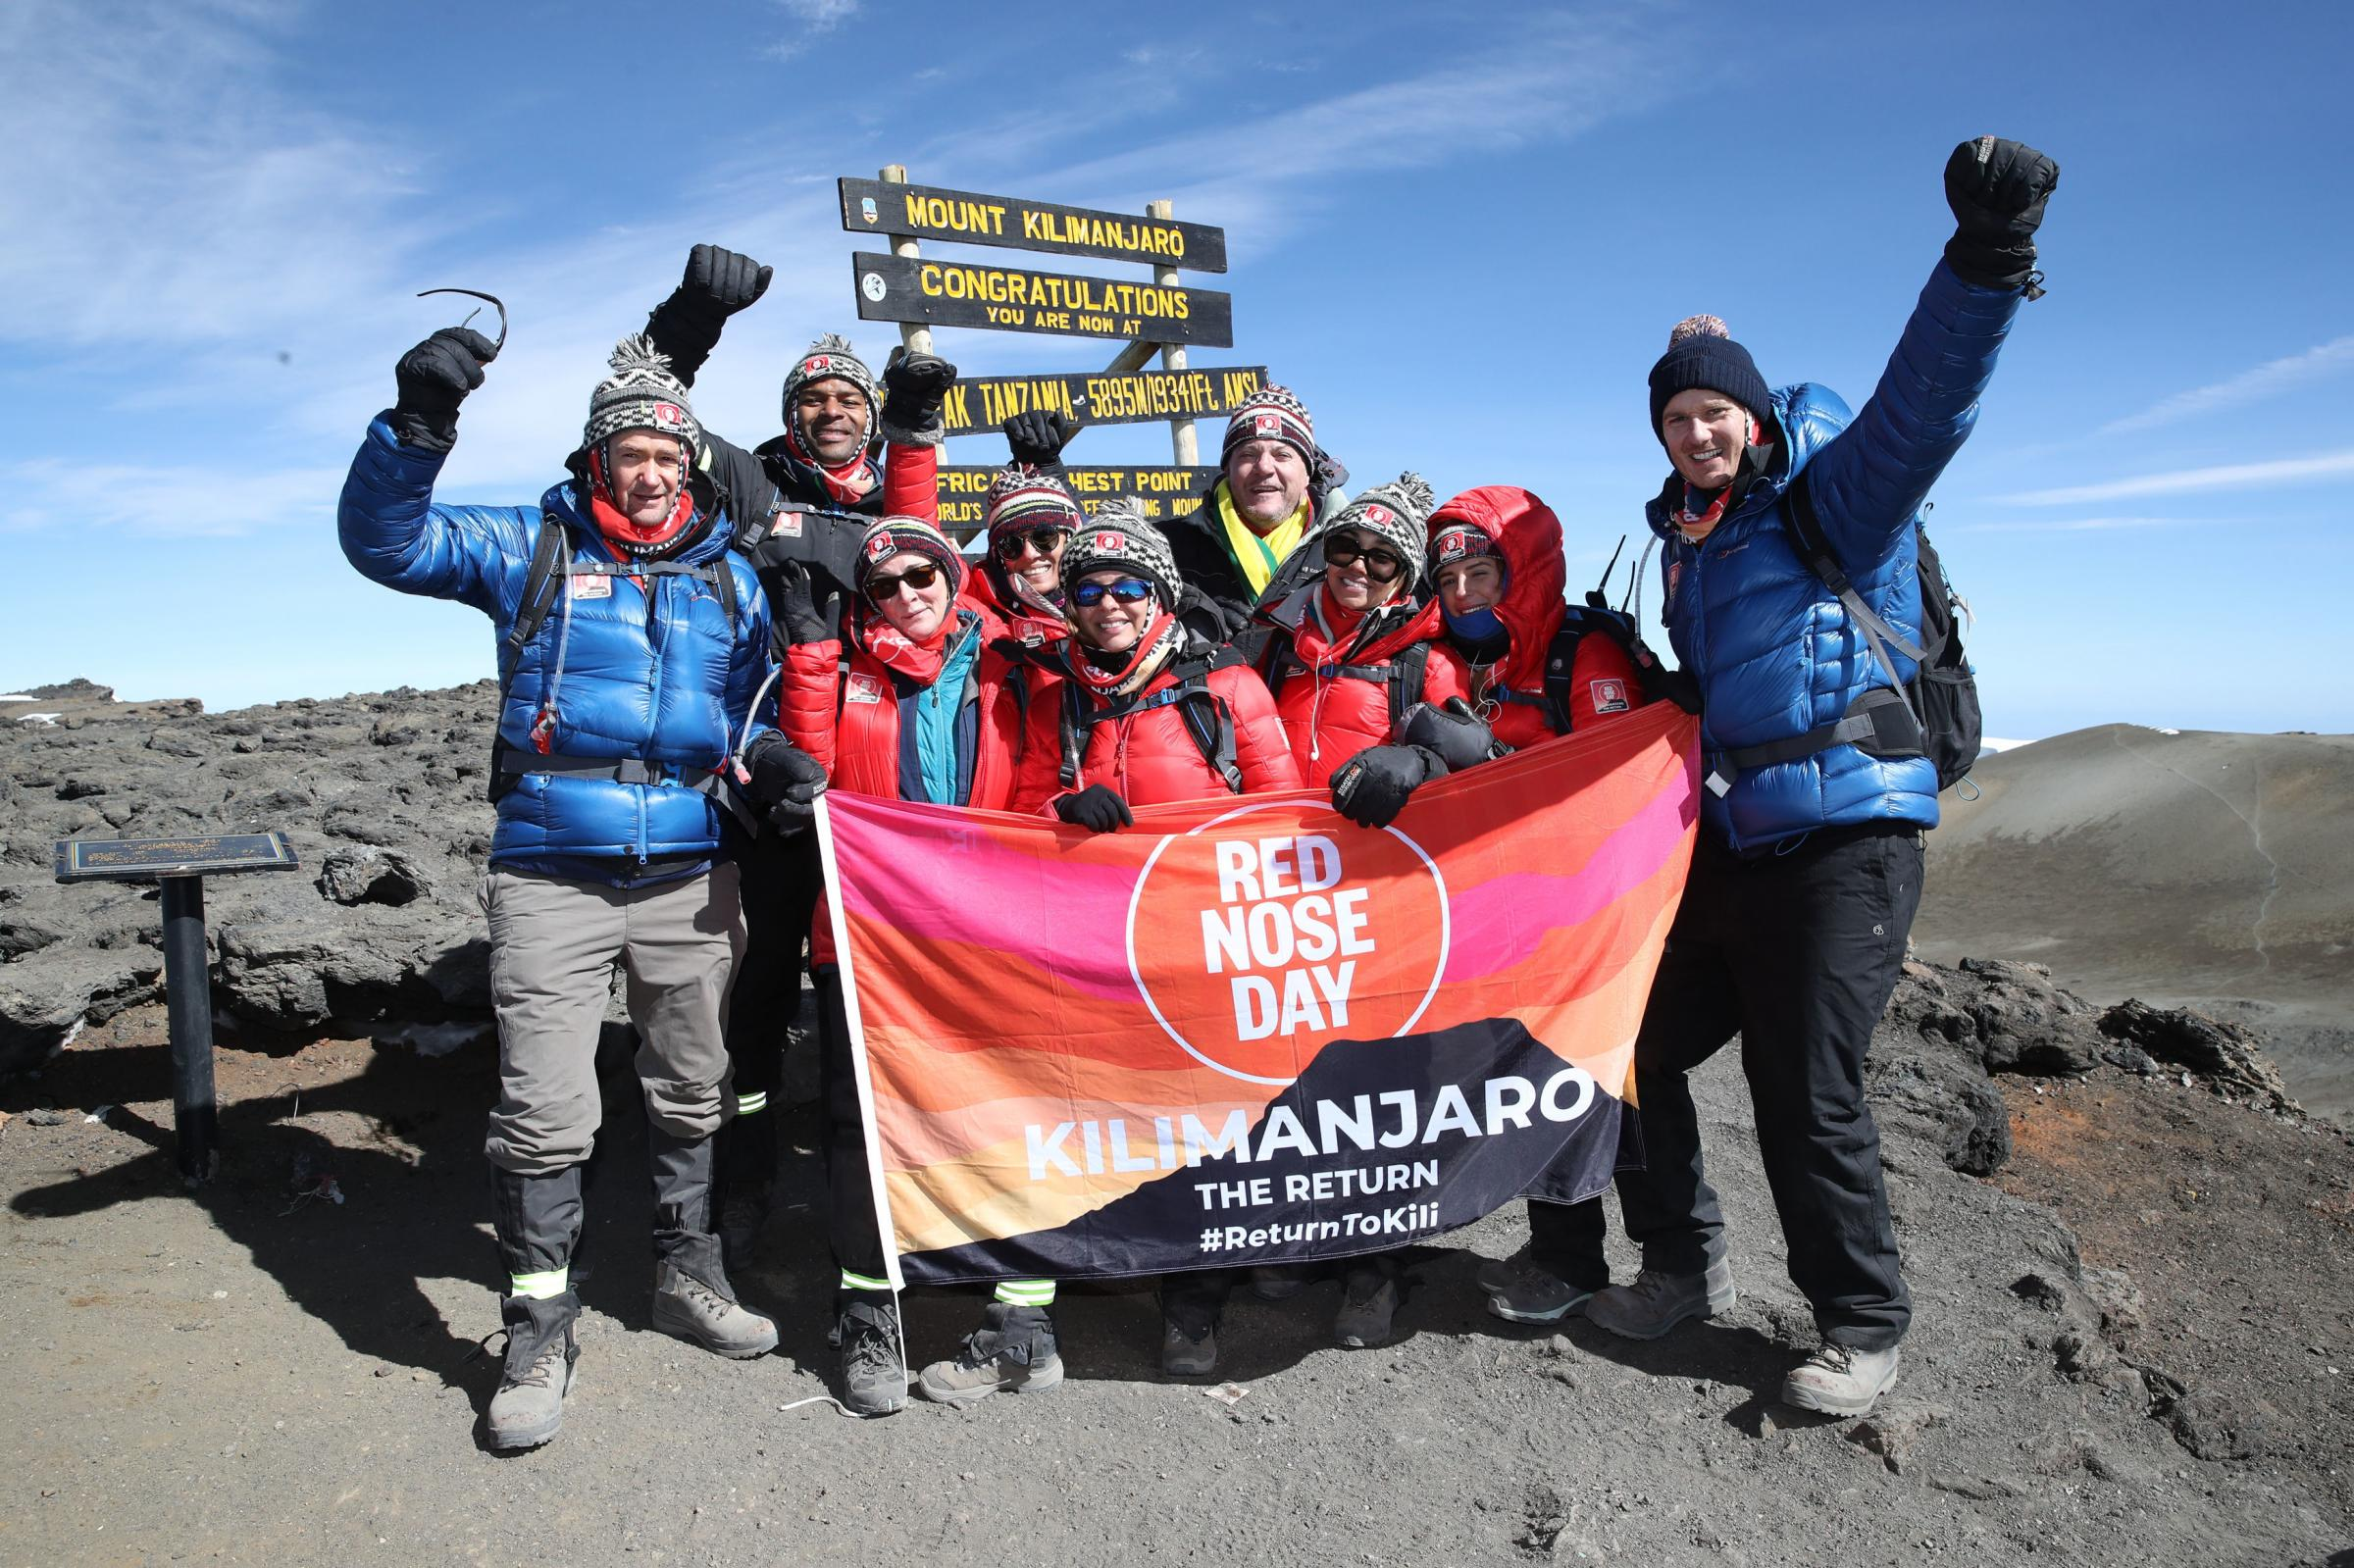 Alexander Armstrong, Osi Umenyiora, Dan Walker, Leigh-Anne Pinnock, Jade Thirlwall, Shirley Ballas, Ed Balls, Anita Rani and Dani Dyer have been climbing Africa's highest mountain in Tanzania to raise money for Comic Relief. Photograph: Chris Jackson